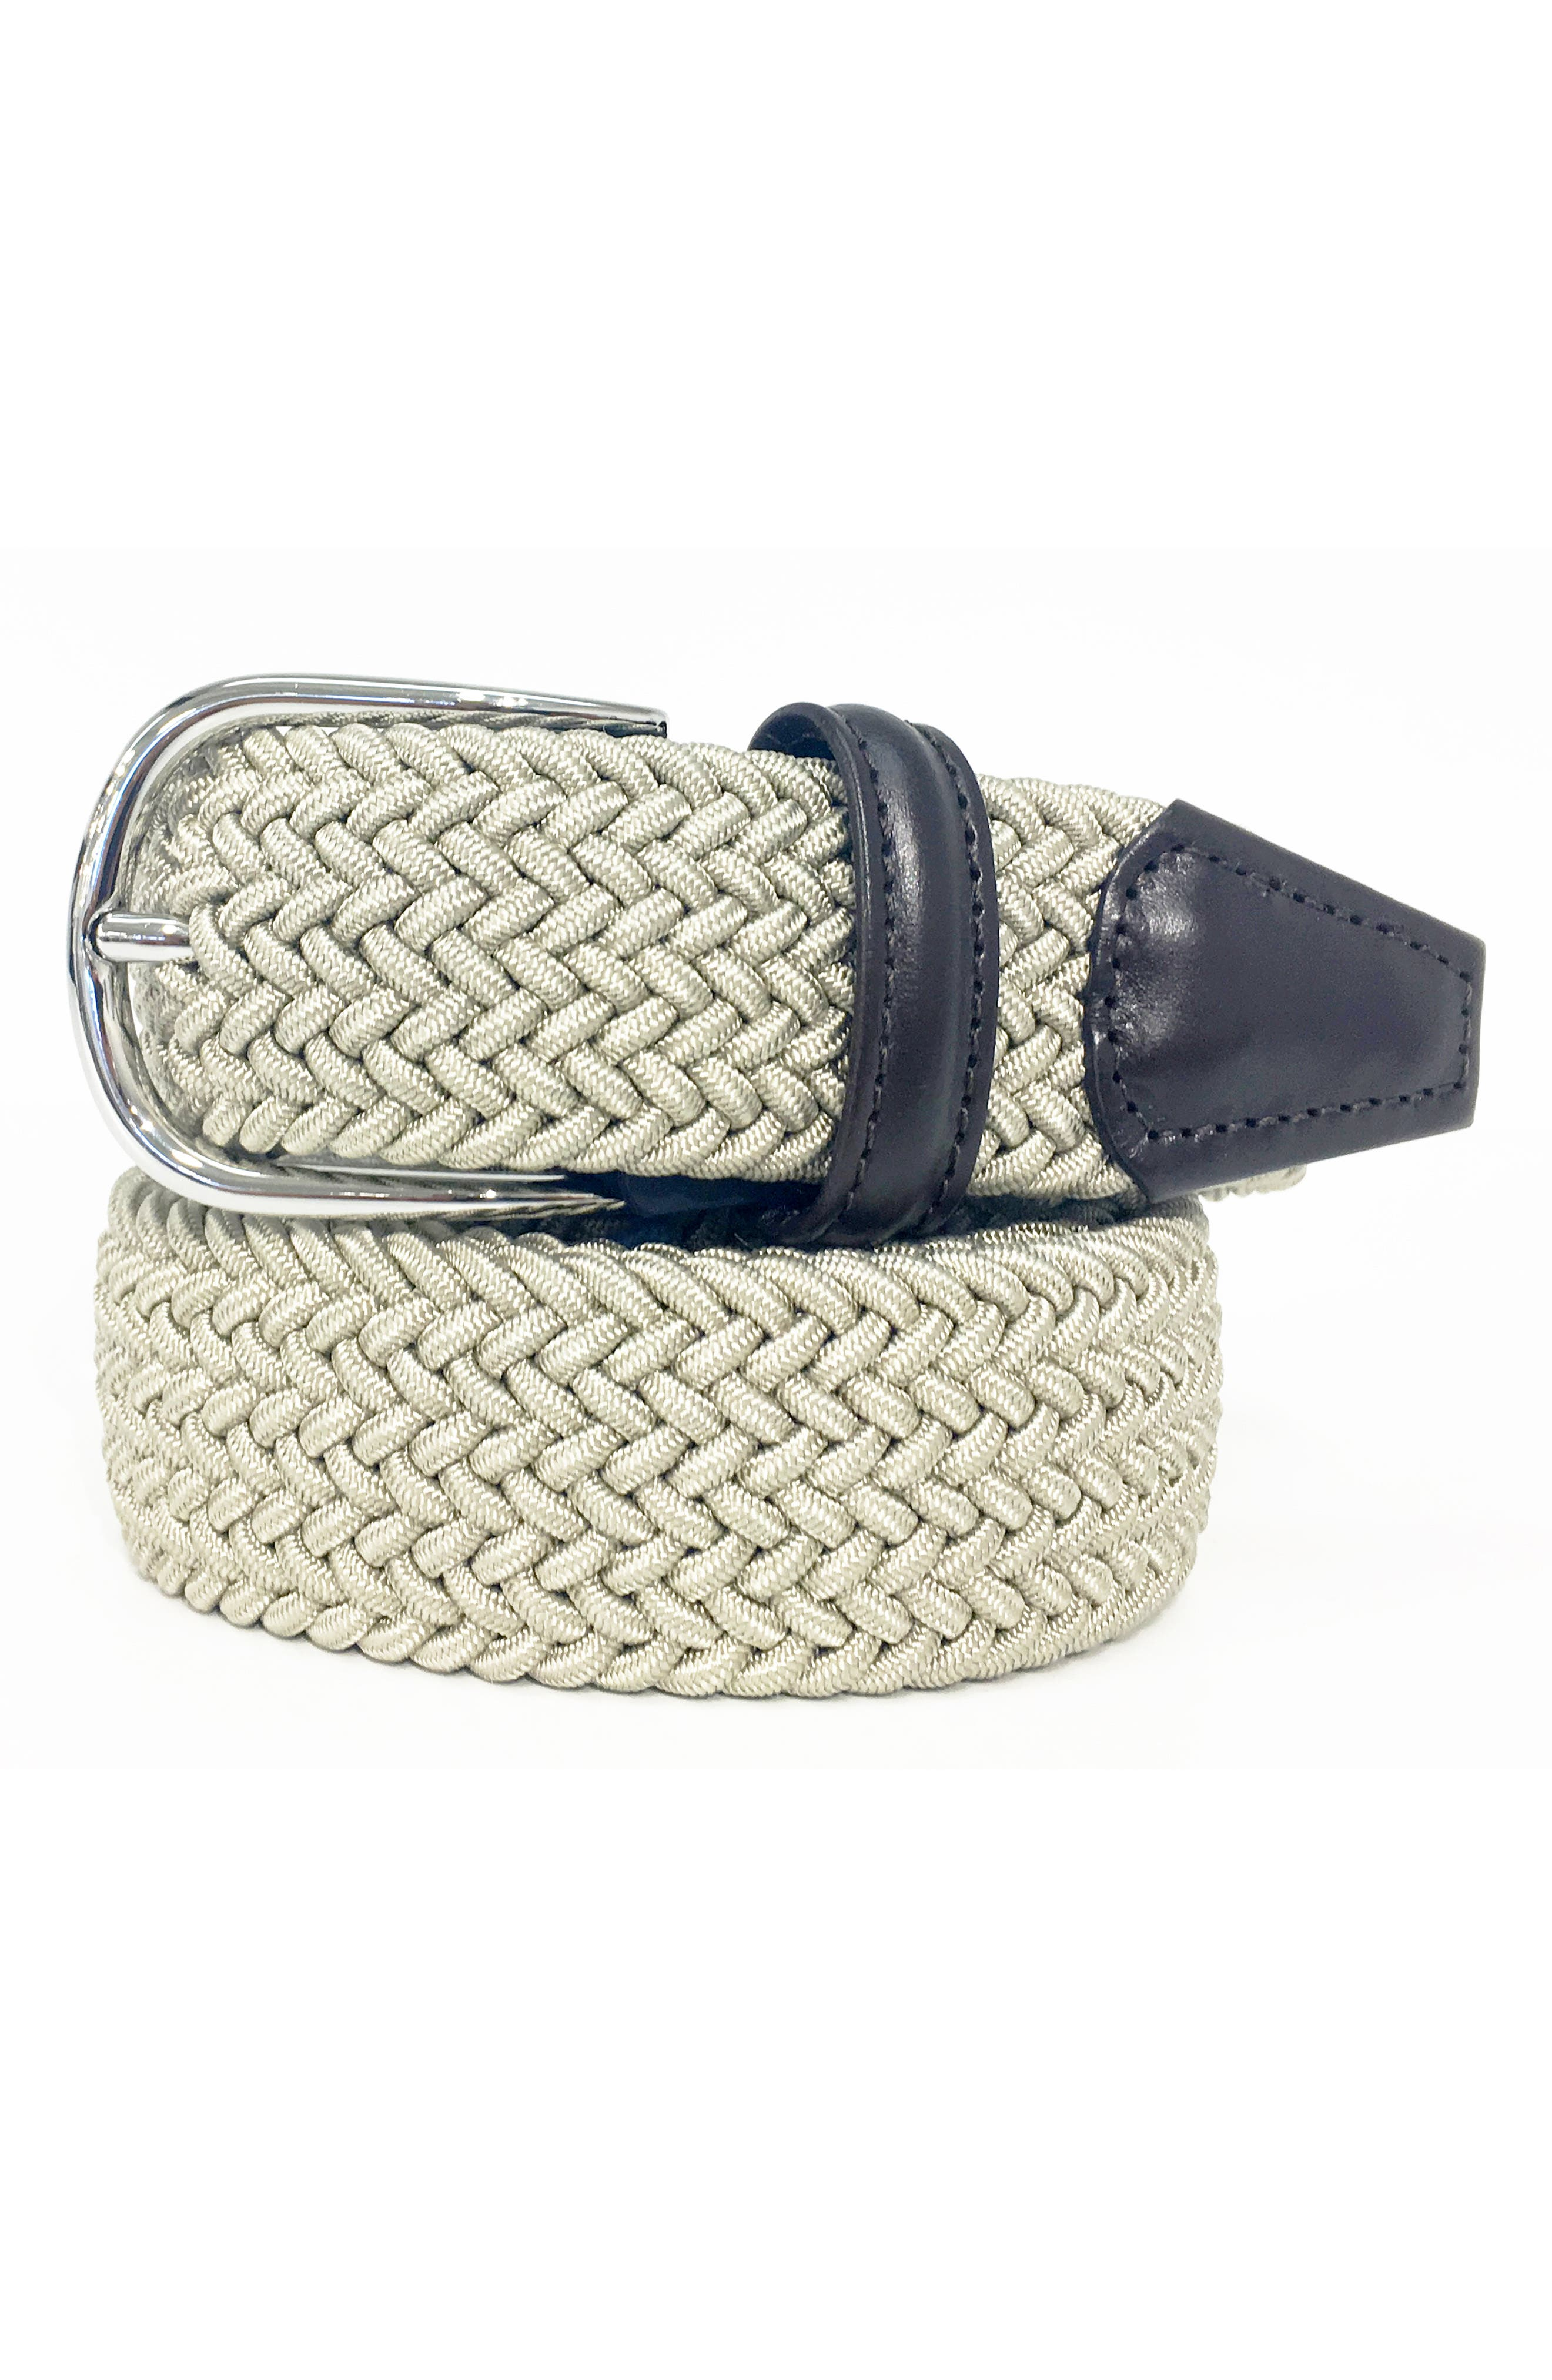 ANDERSONS Basic Stretch Woven Belt in Tan